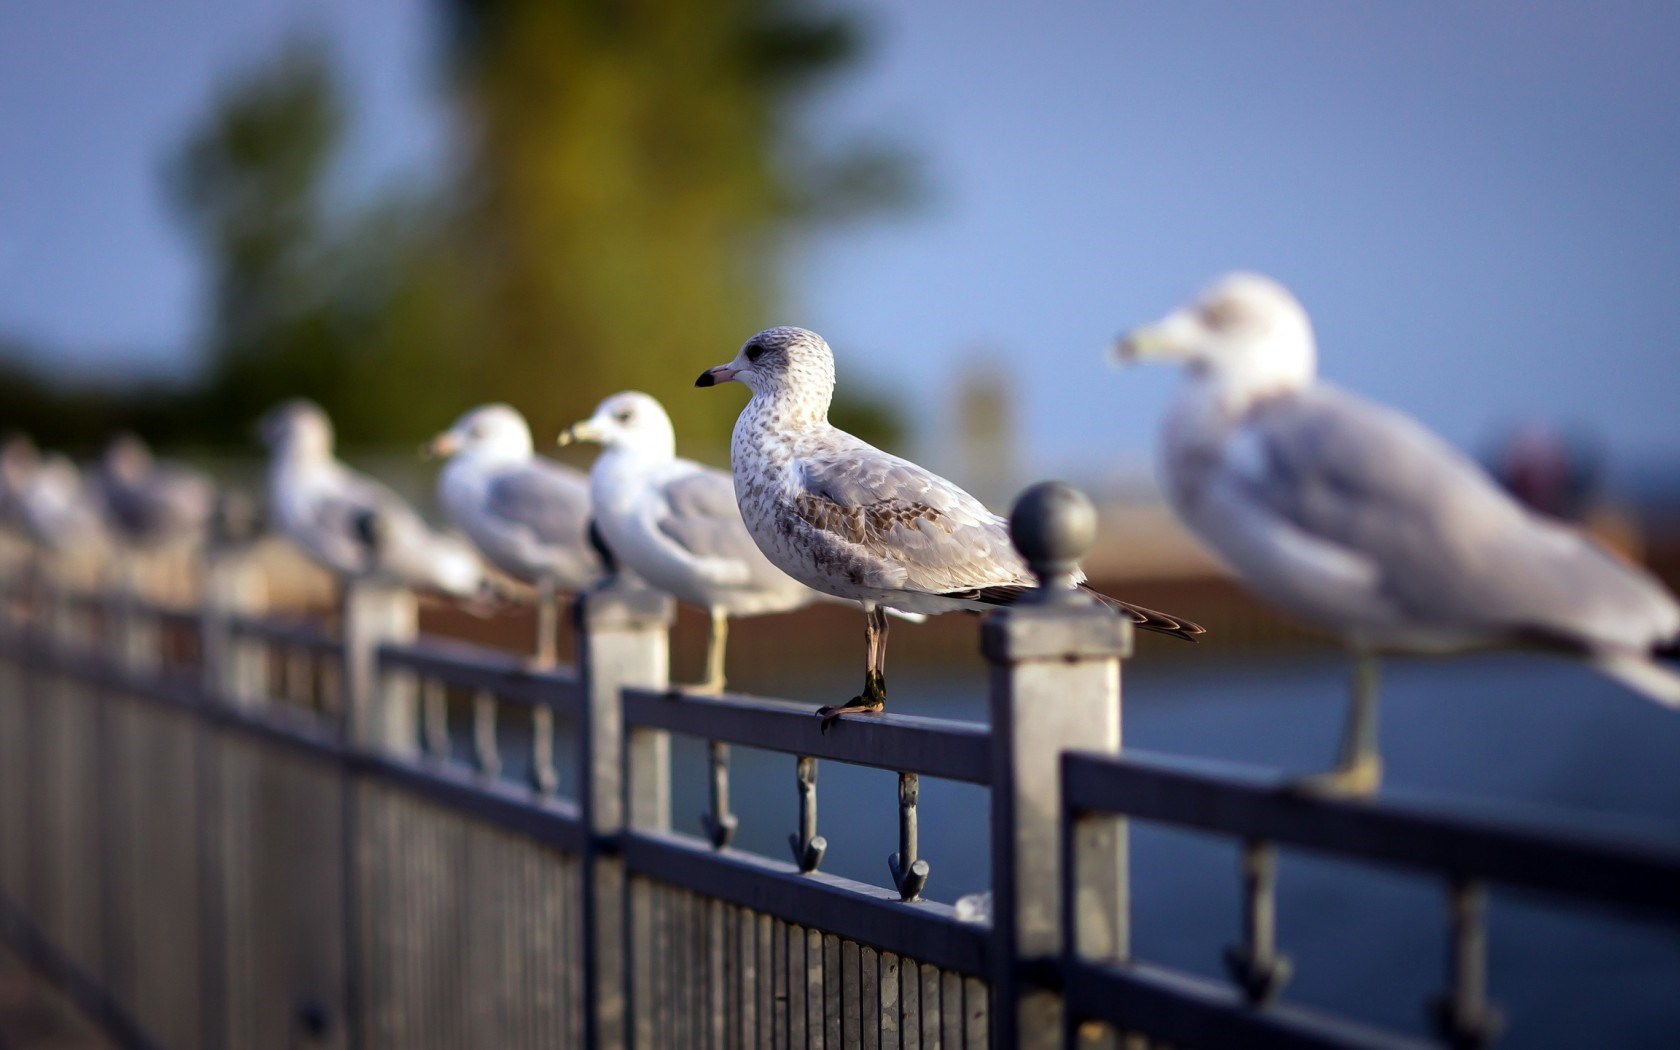 seagulls images